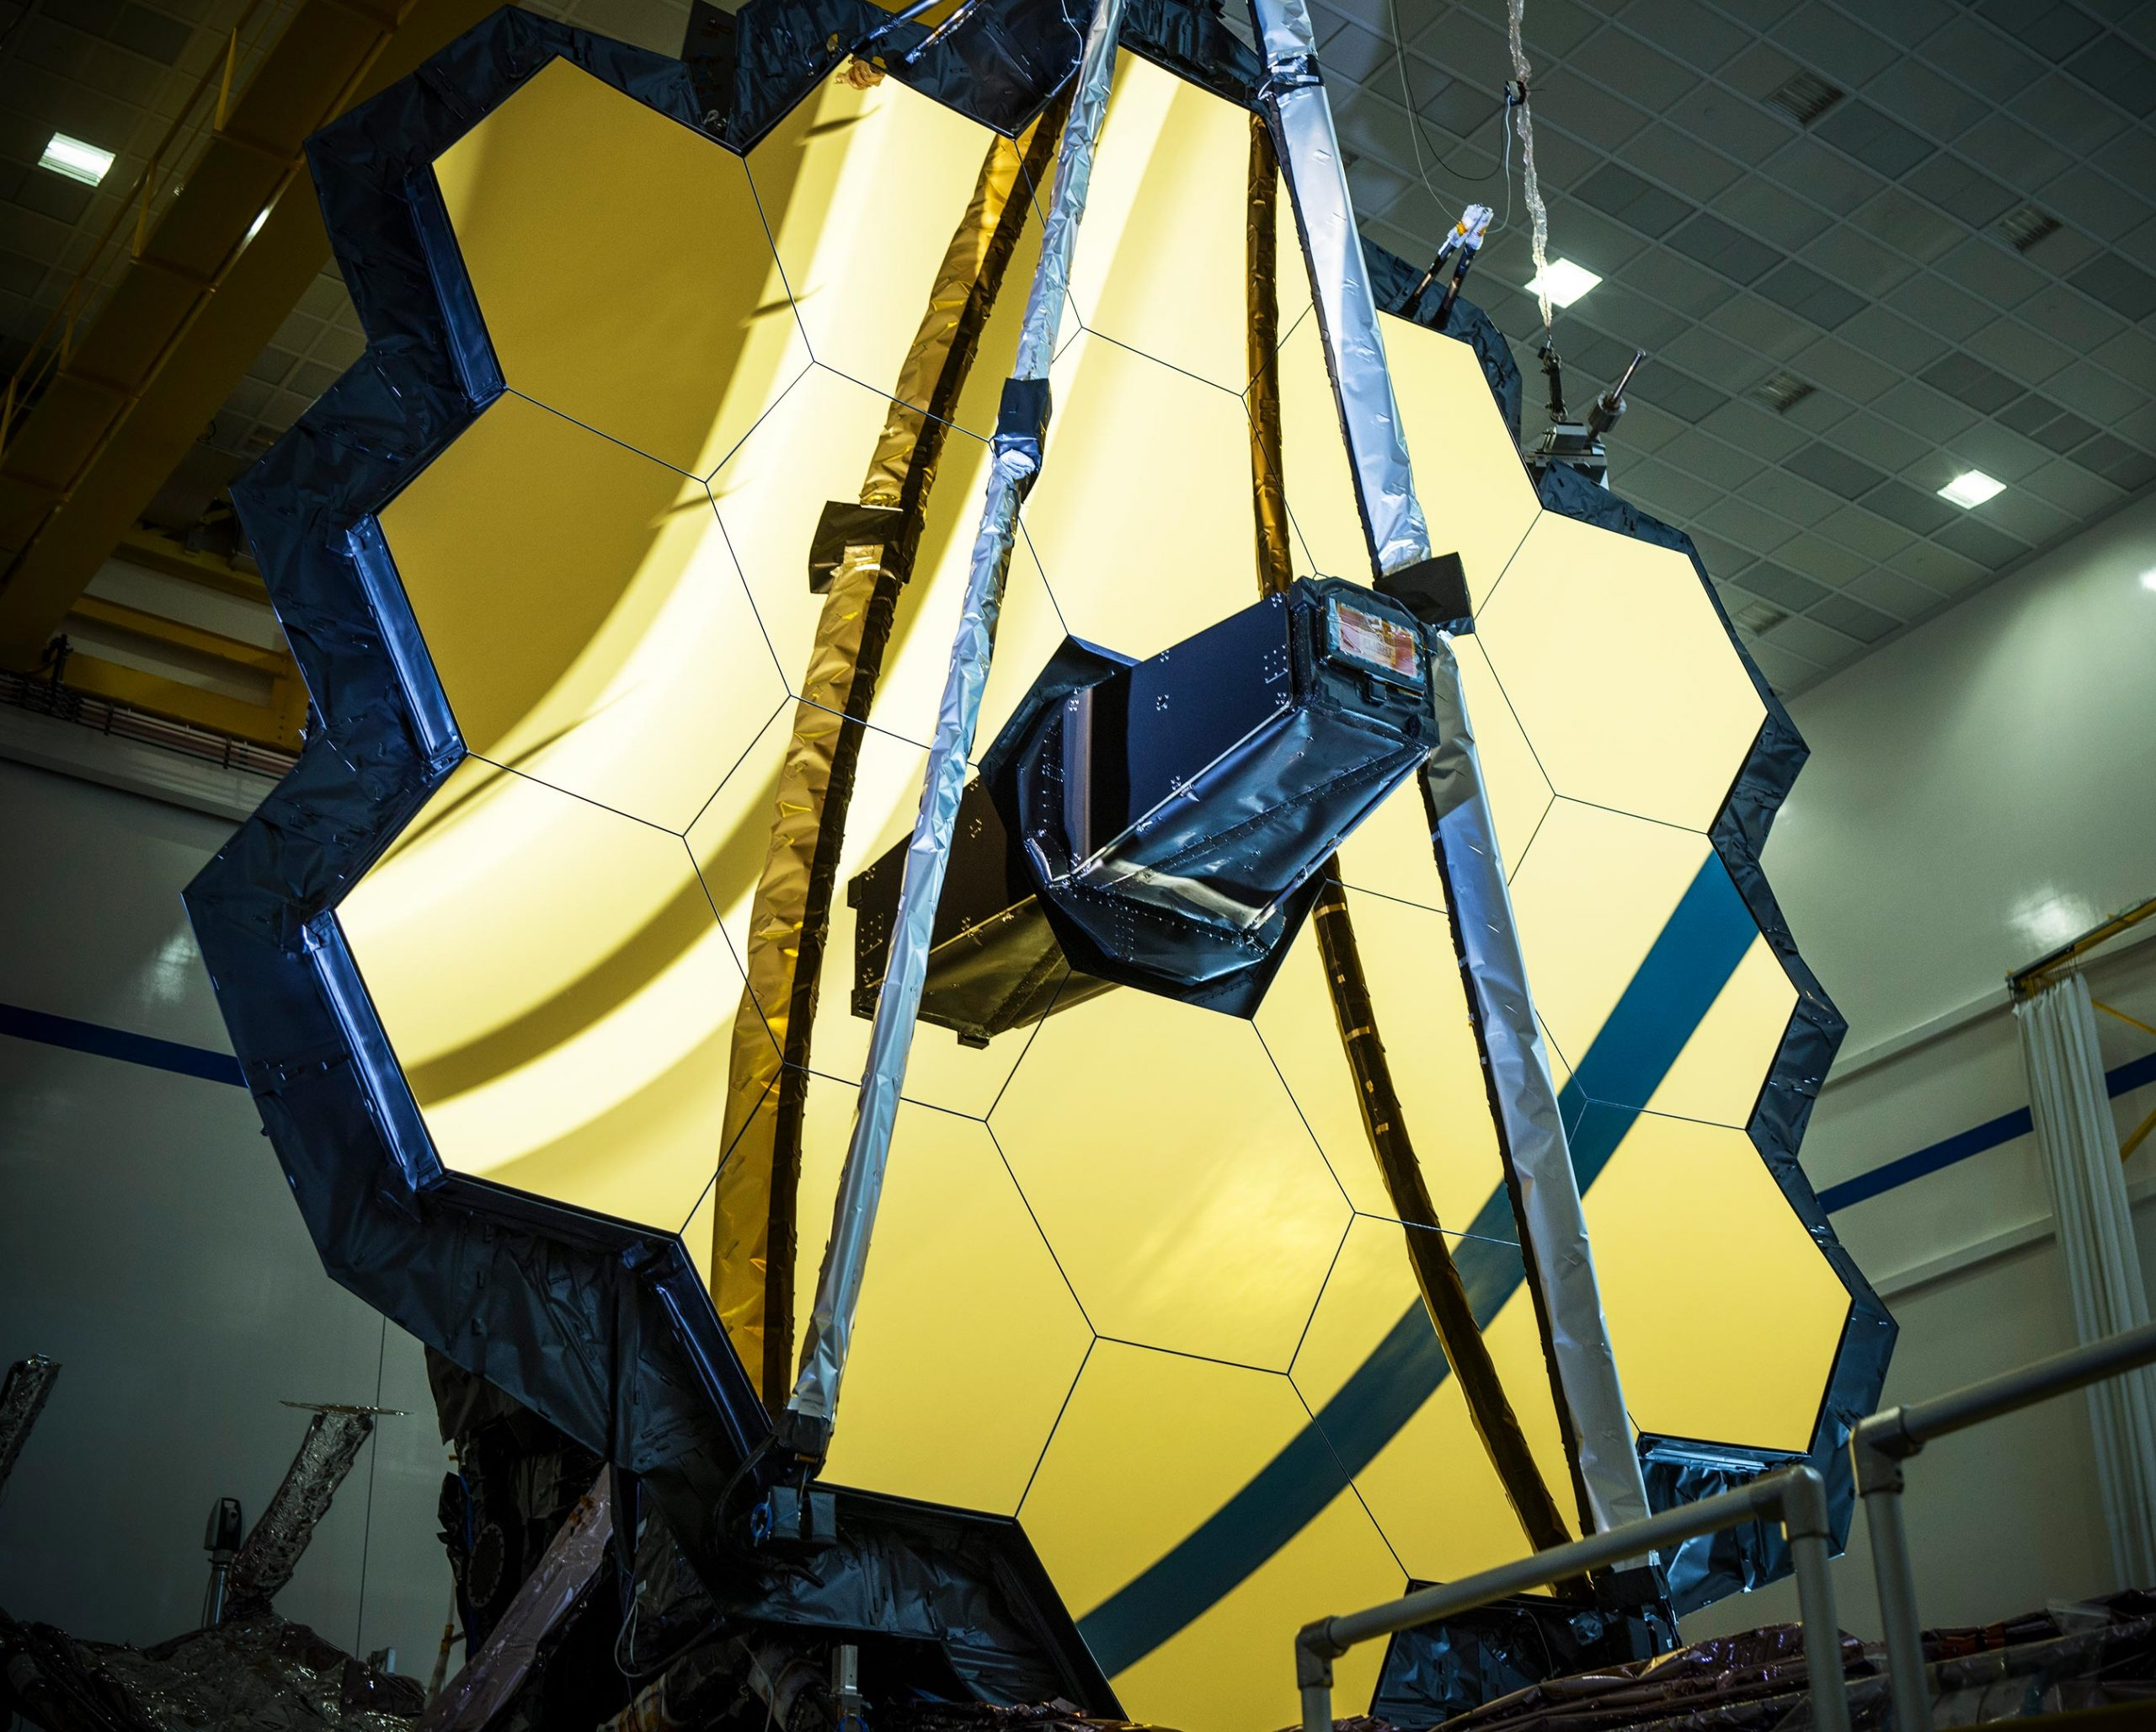 NASA's James Webb Space Telescope Completes First Full Systems Evaluation